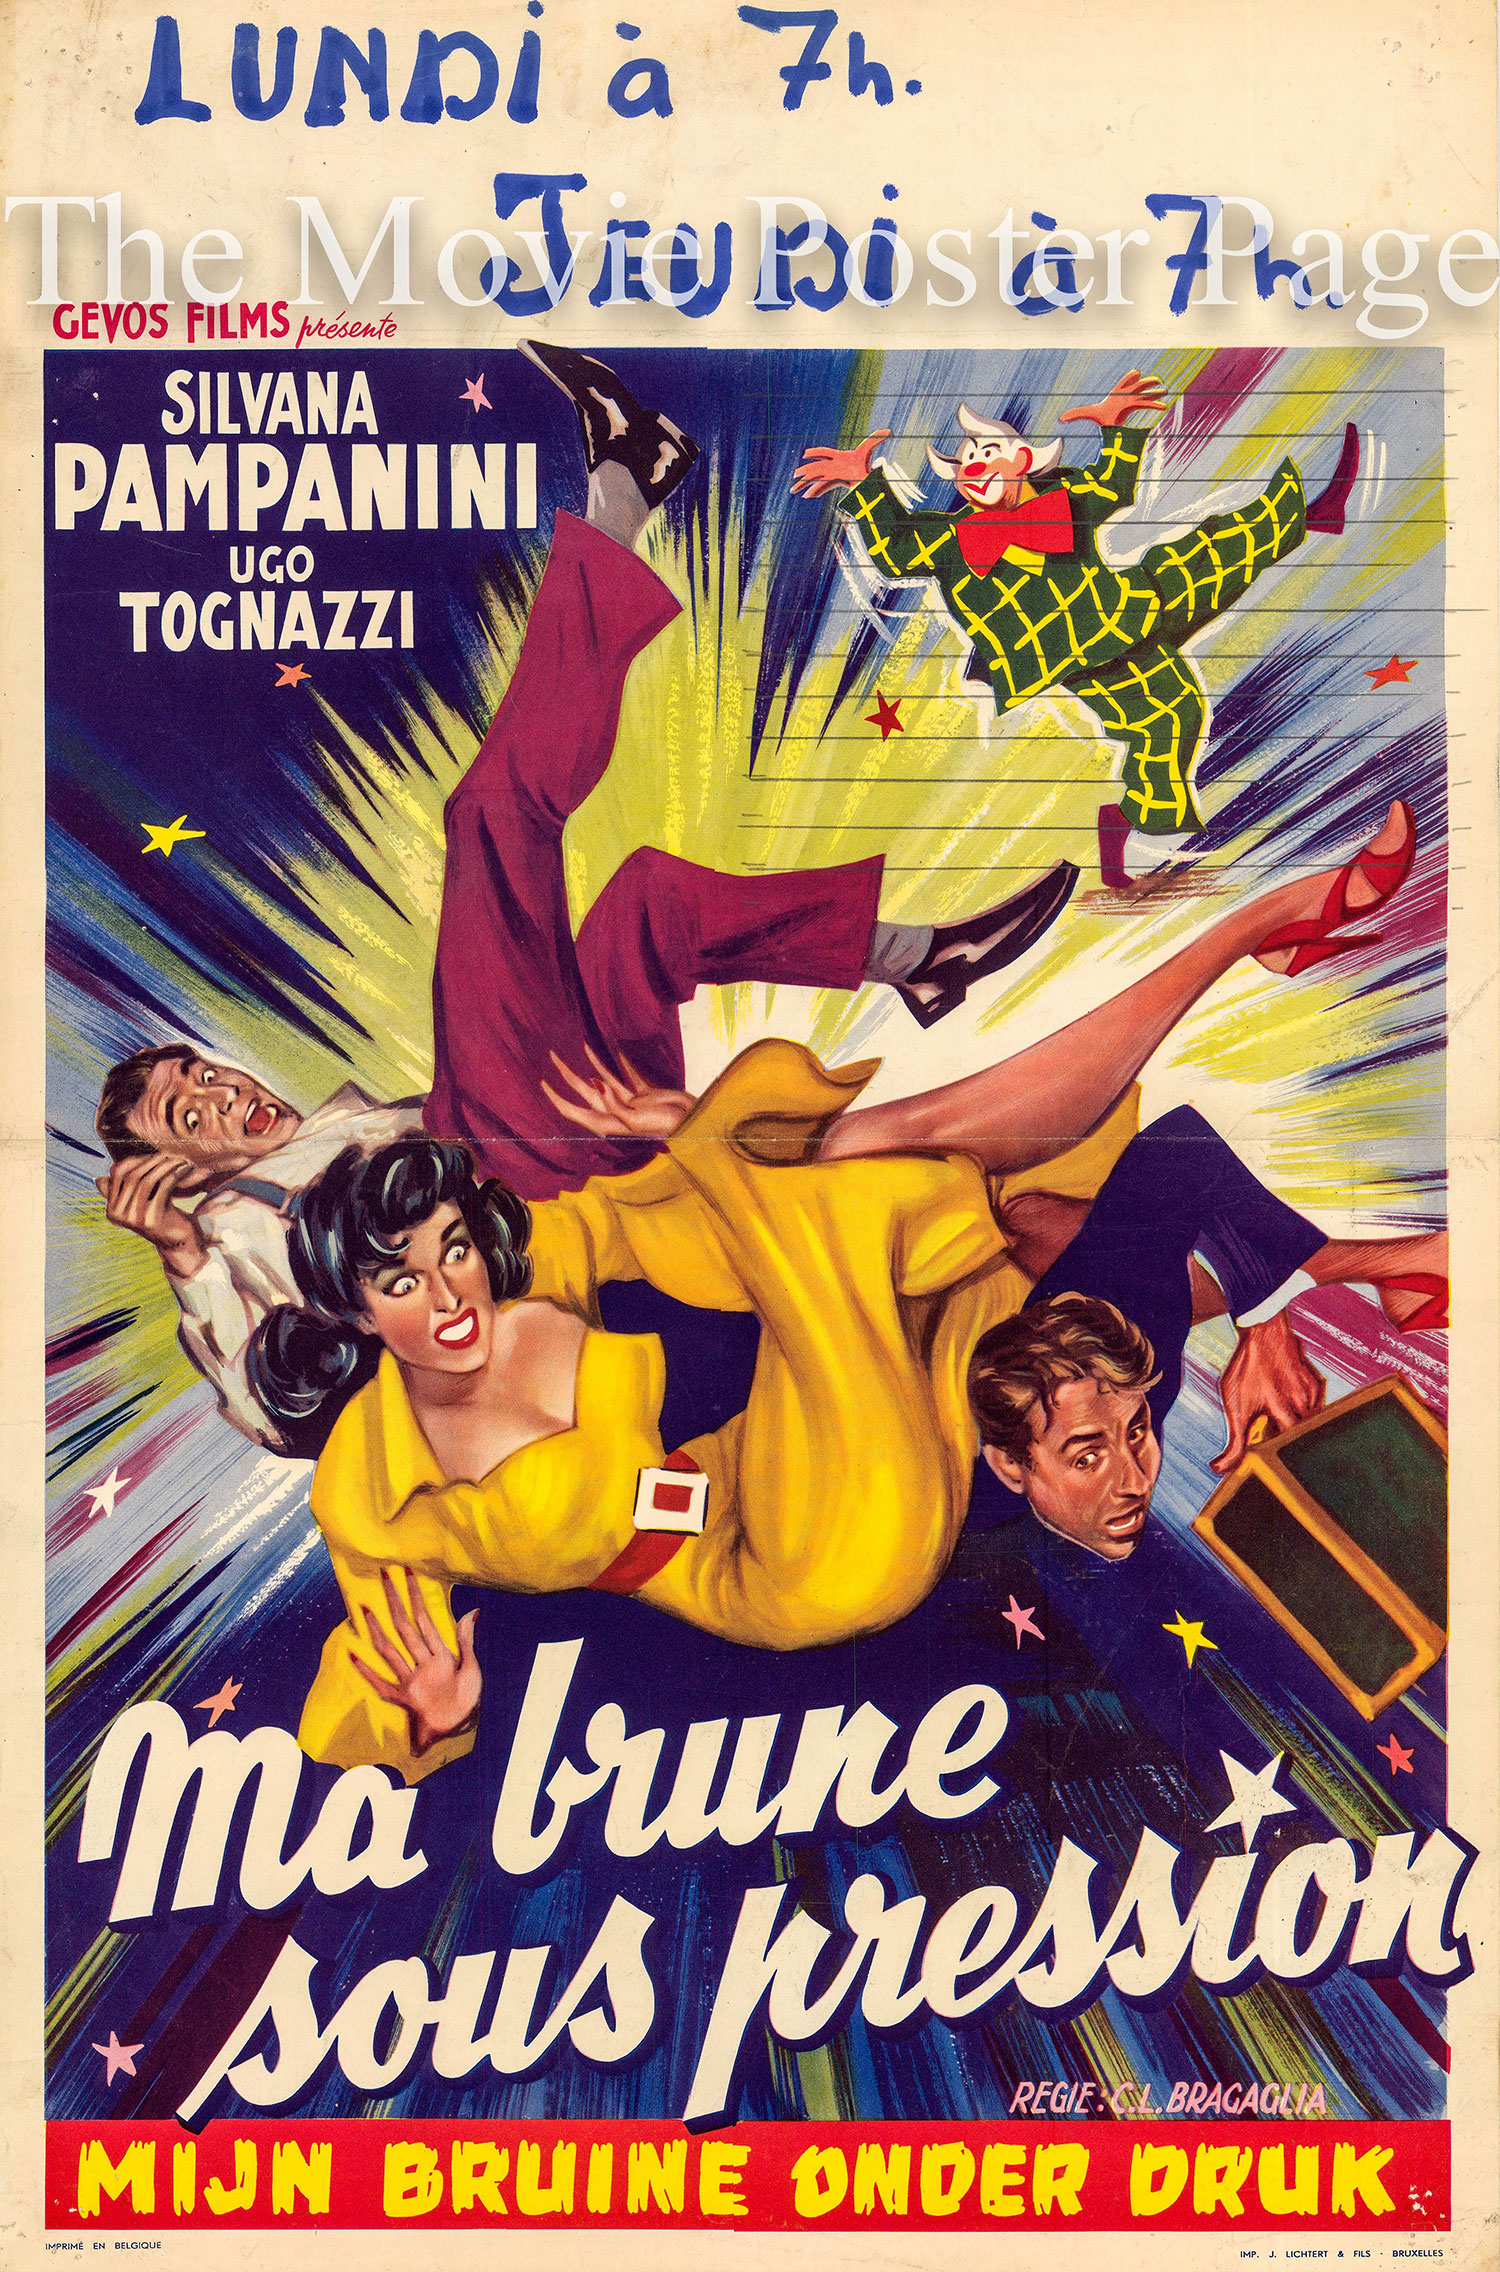 Pictured is a Belgian promotional poster for the 1951 Carlo Ludovico Bragaglia film Una Bruna Indiavolata, starring Silvana Pampanini.